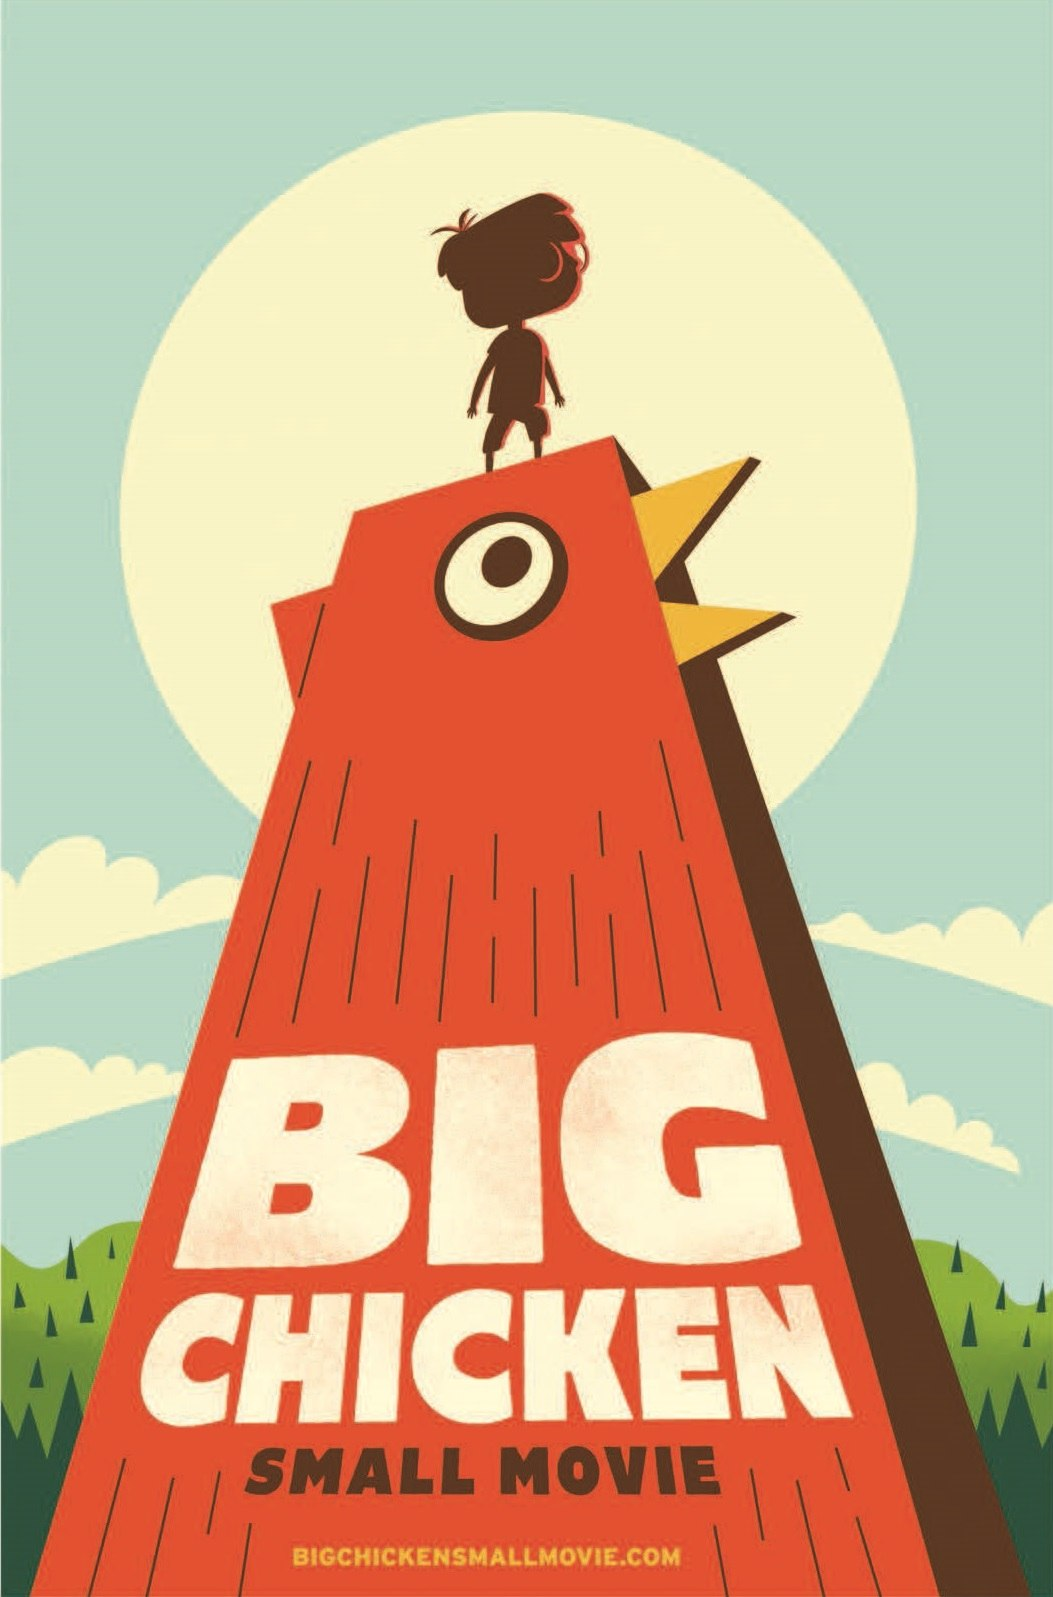 awesome inc brings big chicken small movie to life for kfc